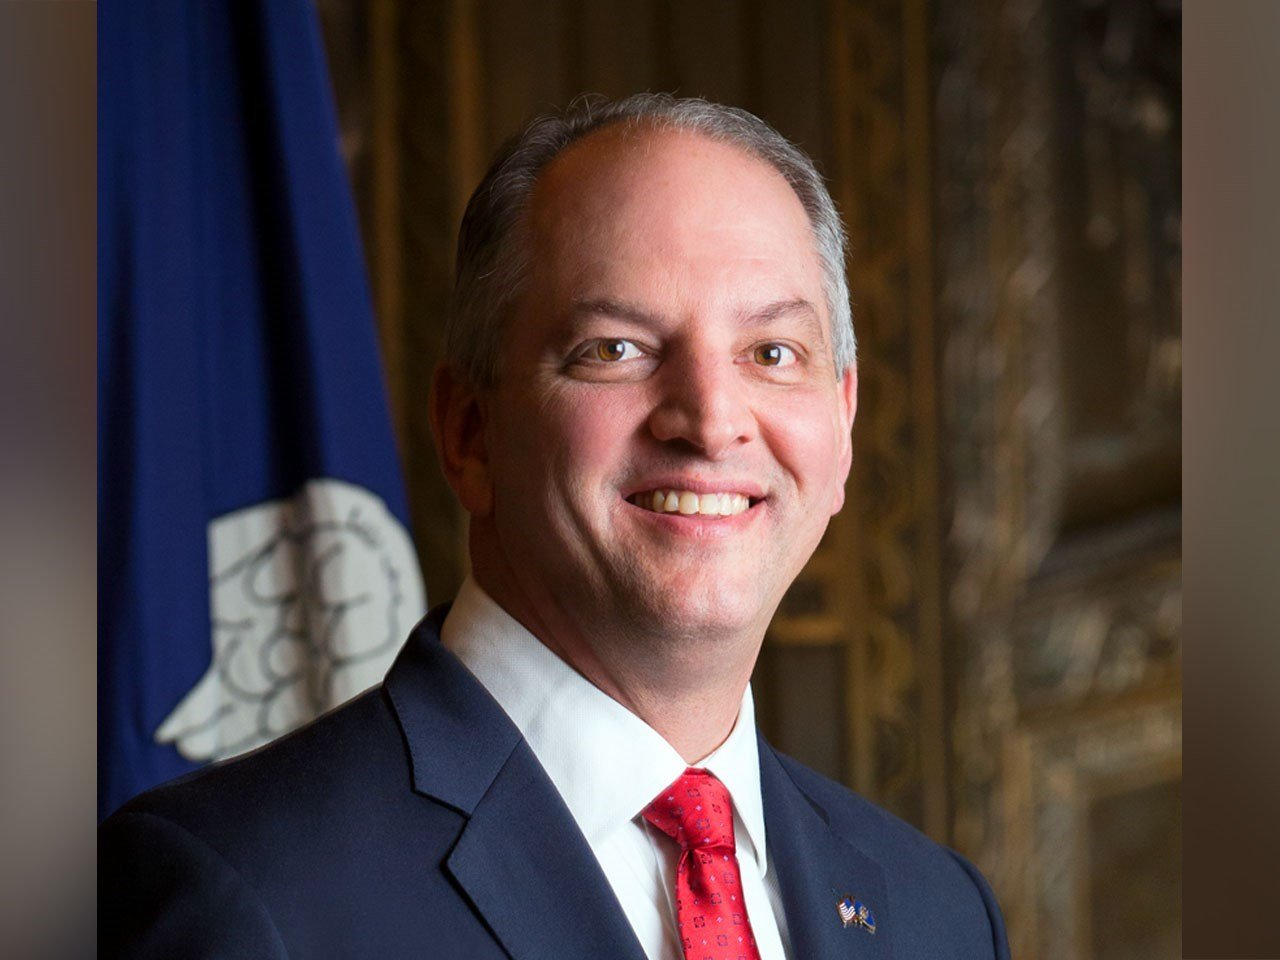 Louisiana Governor John Bel Edwards / Courtesy of MGN Online